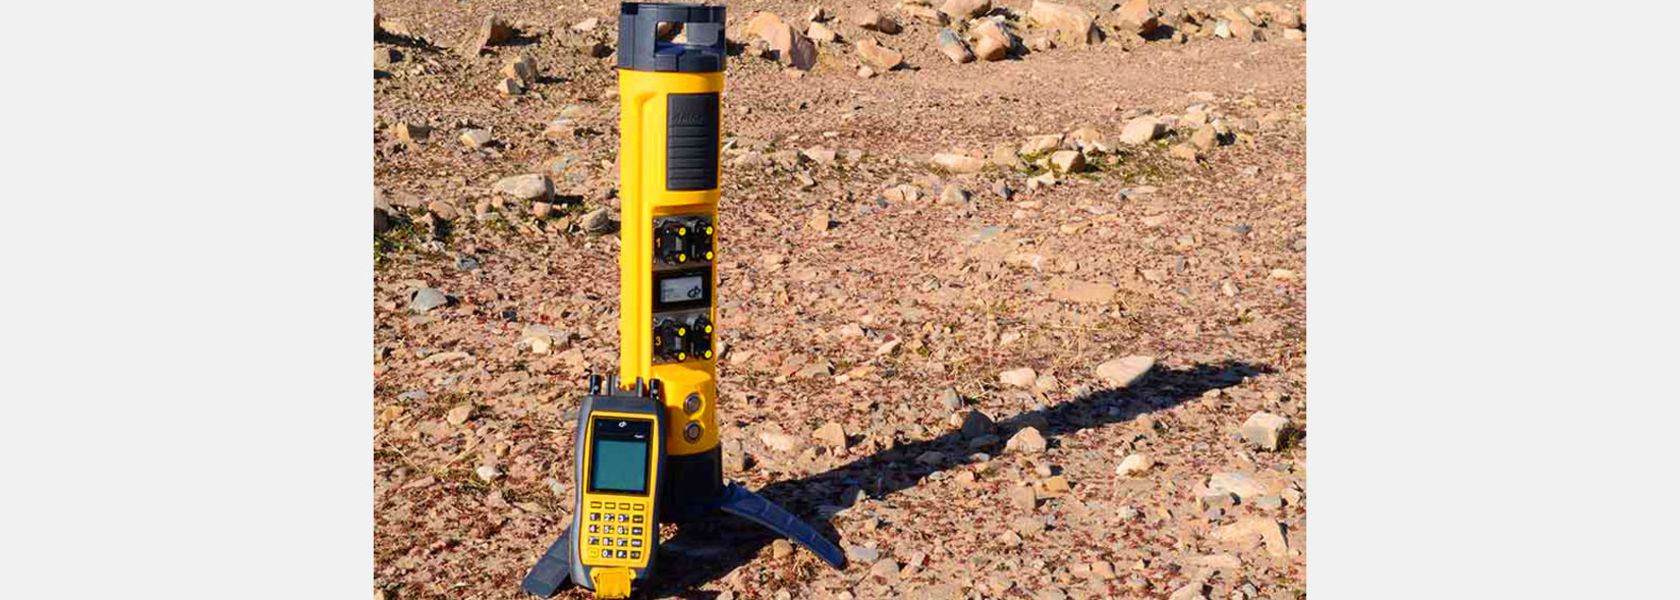 DigiShot Plus 4G is an easy to use precision blasting system